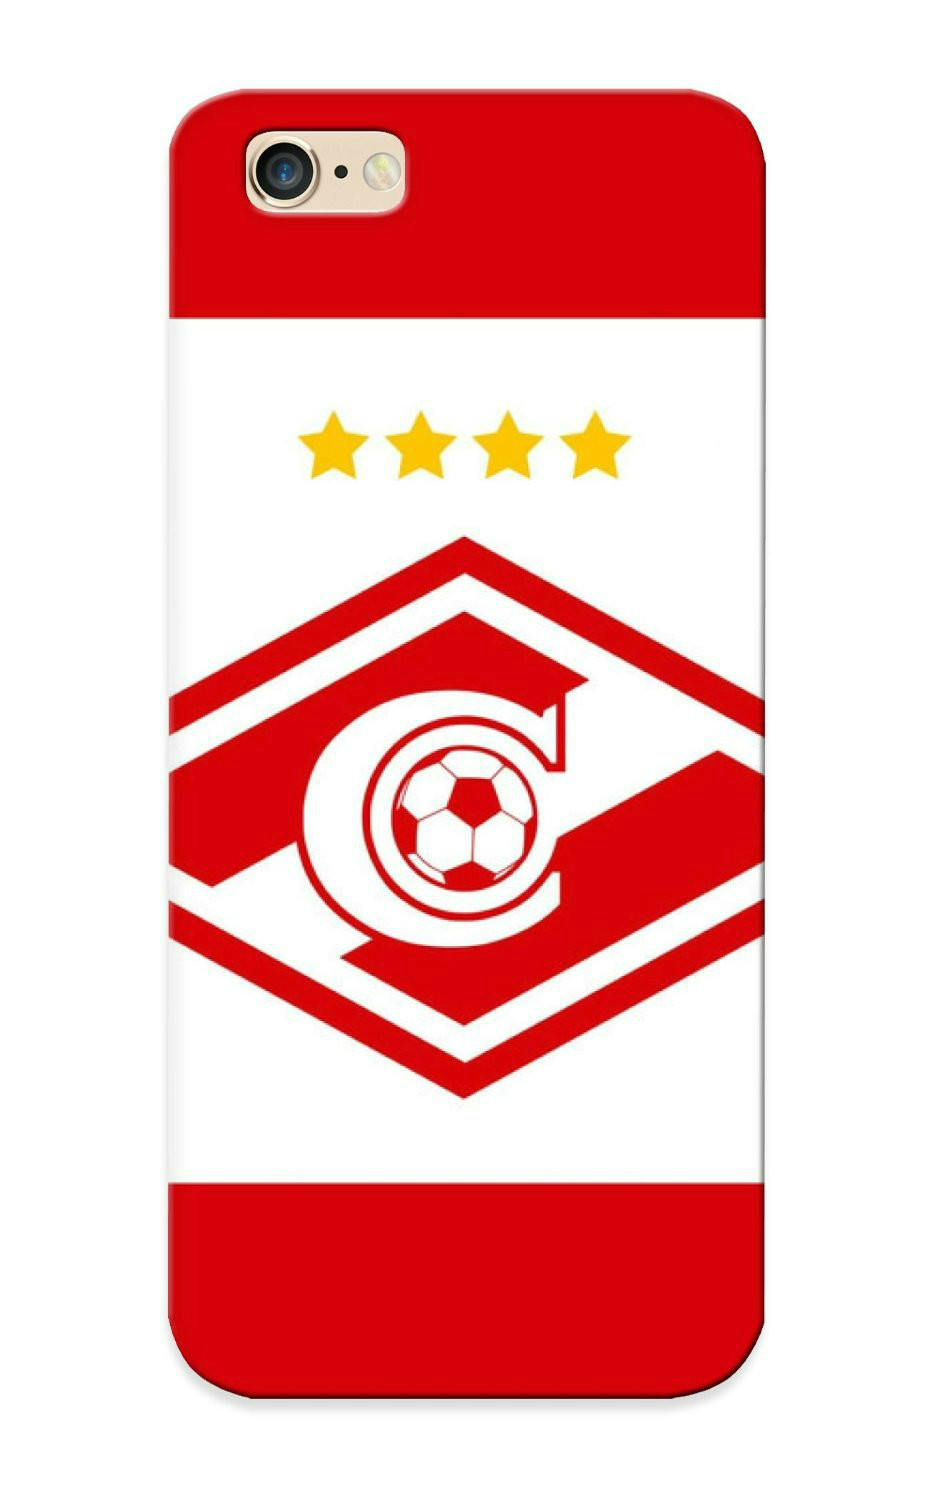 Spartak Moscow Cover case for iphone 4 4s 5 5s 5c 6 6s plus samsung galaxy S3 S4 mini S5 S6 Note 2 3 4 z3351